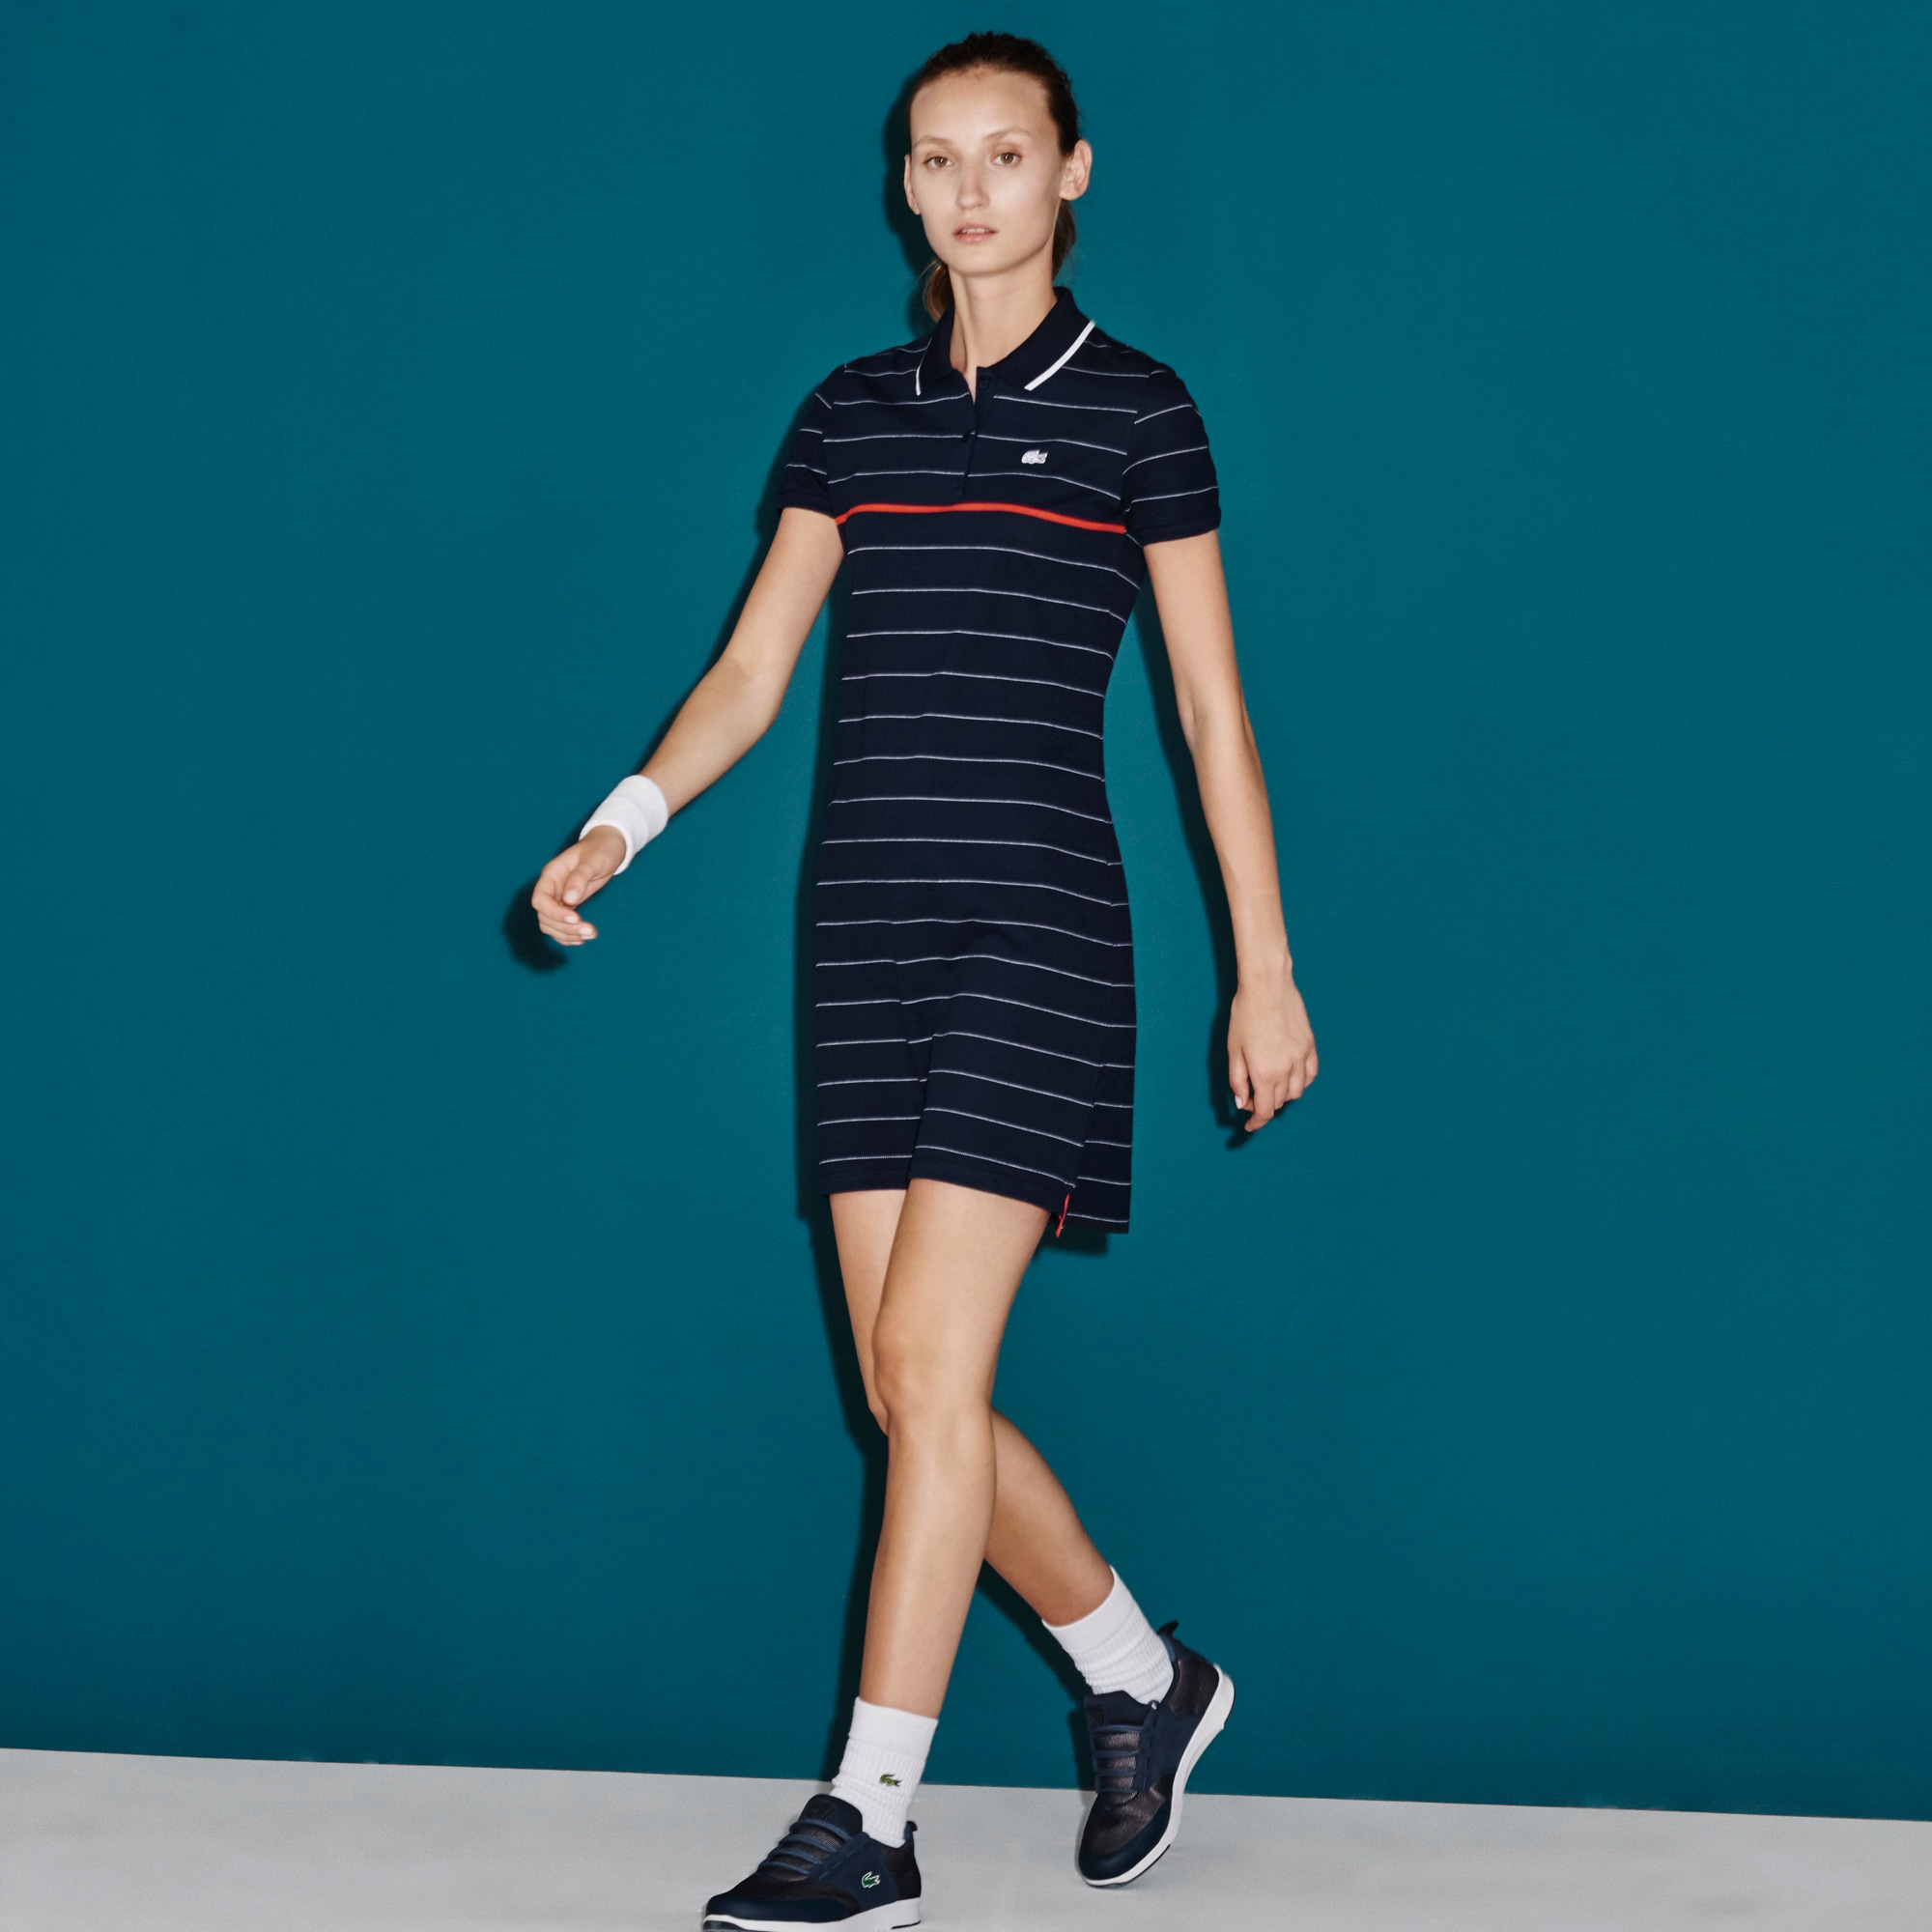 Women's SPORT French Open Striped Polo Dress